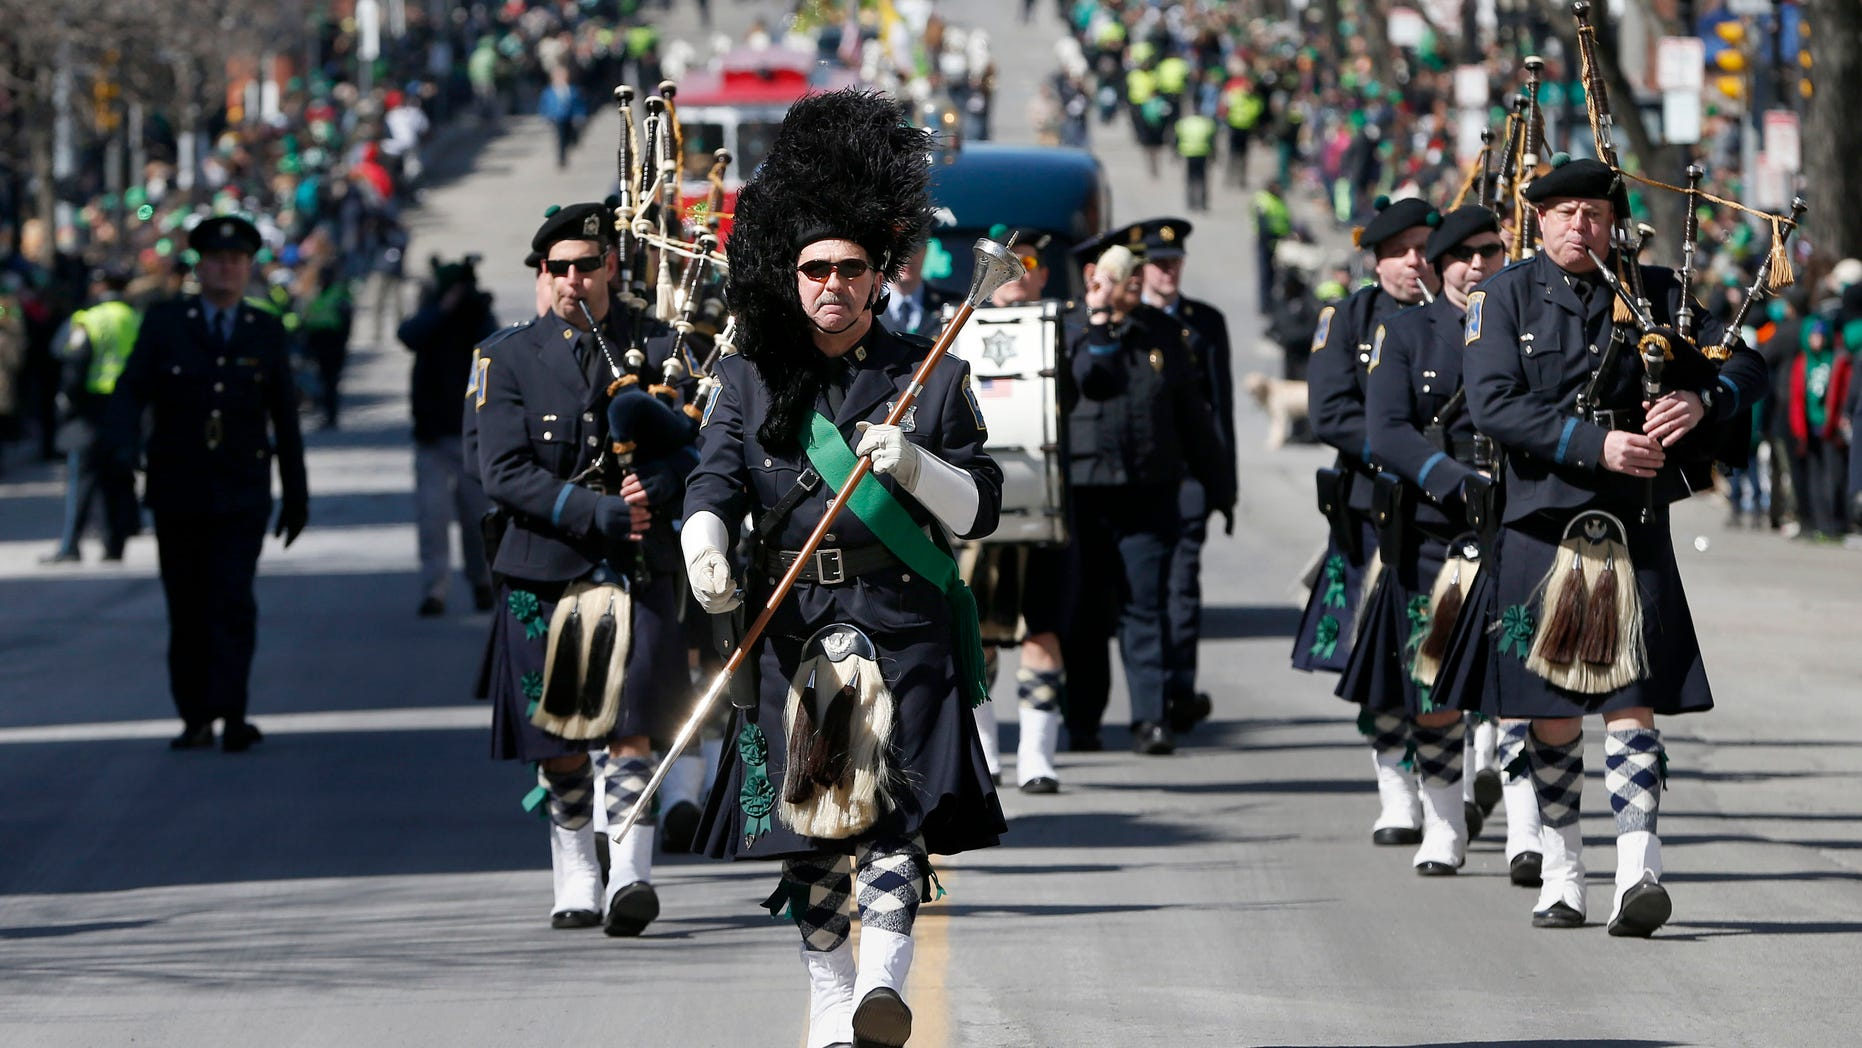 The Boston Police Gaelic Column marches in the annual St. Patrick's Day parade in the South Boston neighborhood of Boston, Sunday, March 16, 2014.